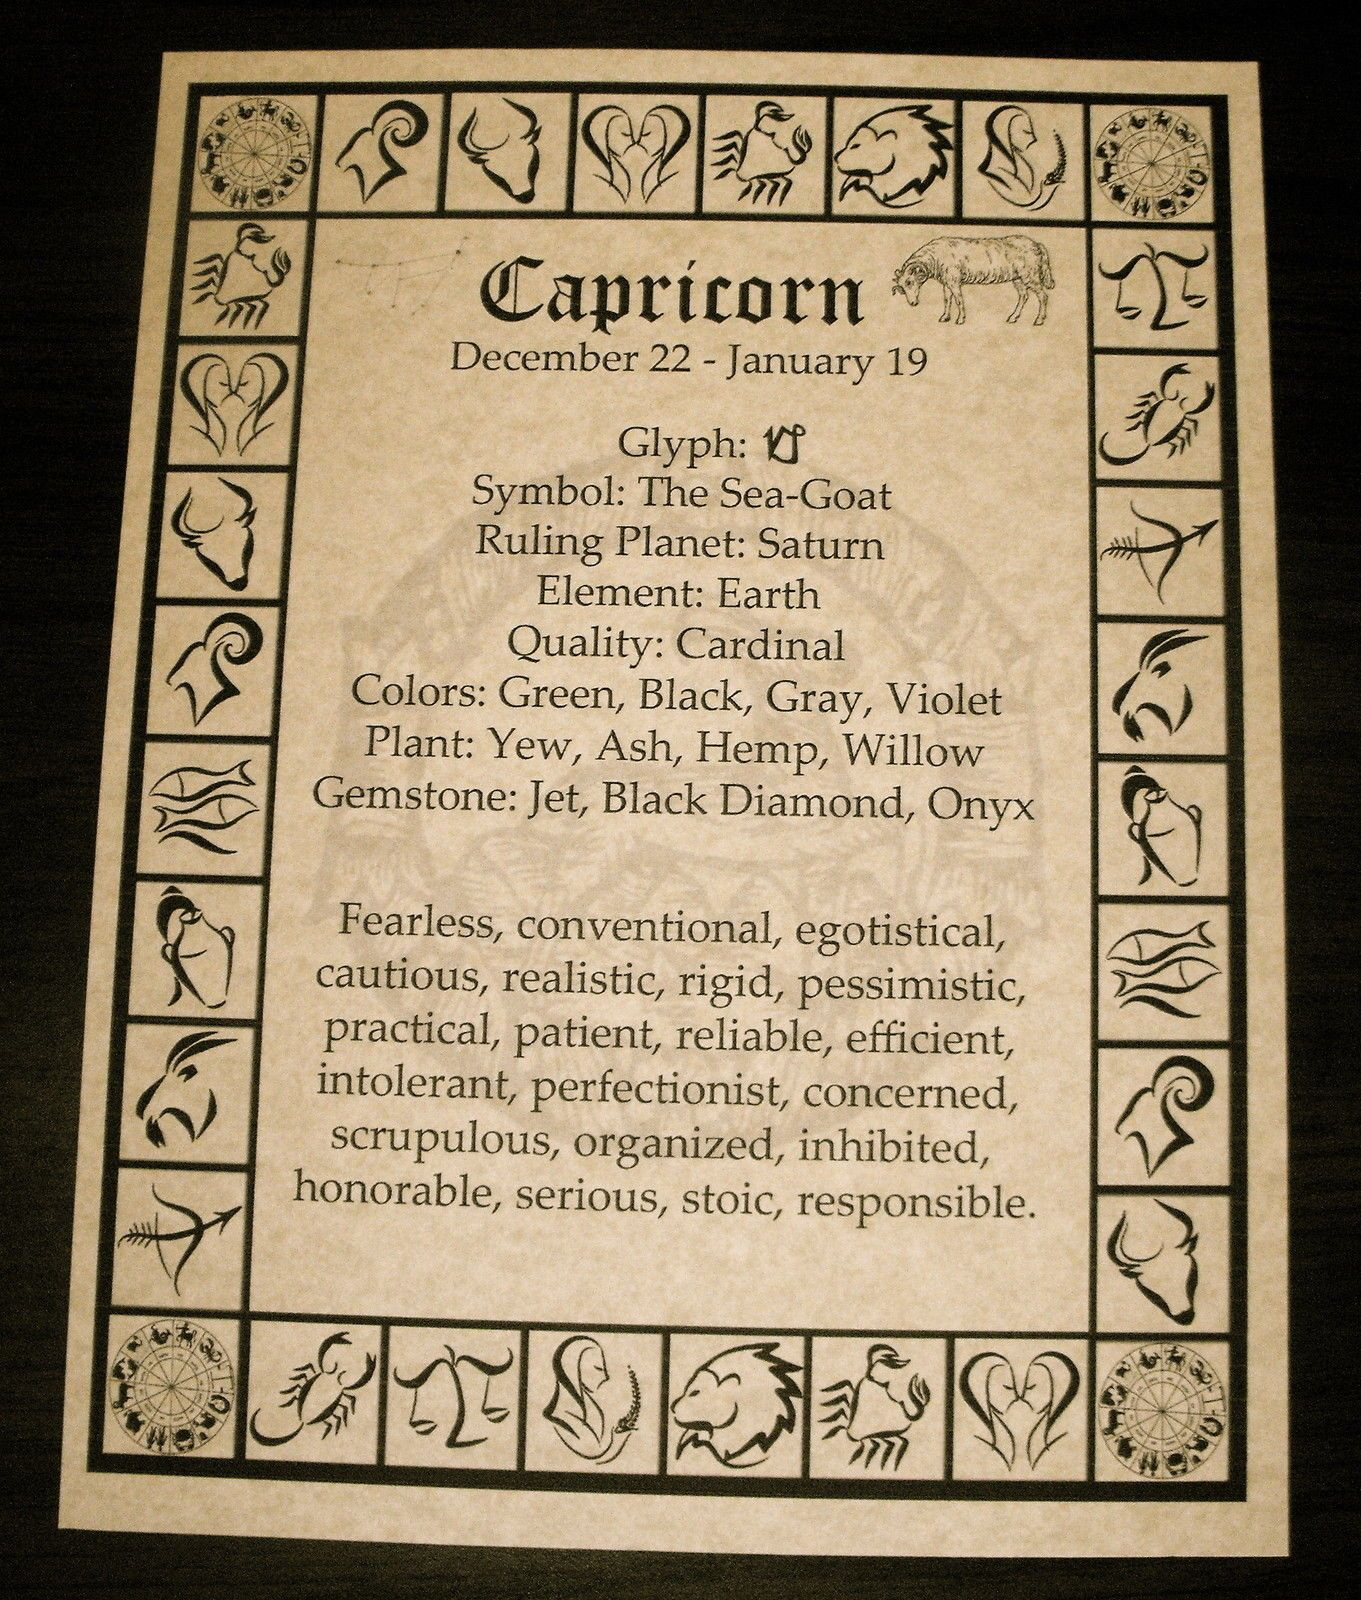 Capricorn Book of Shadows Zodiac Page Wicca Witchcraft Pagan Wiccan  Horoscope  e56d47210ed46